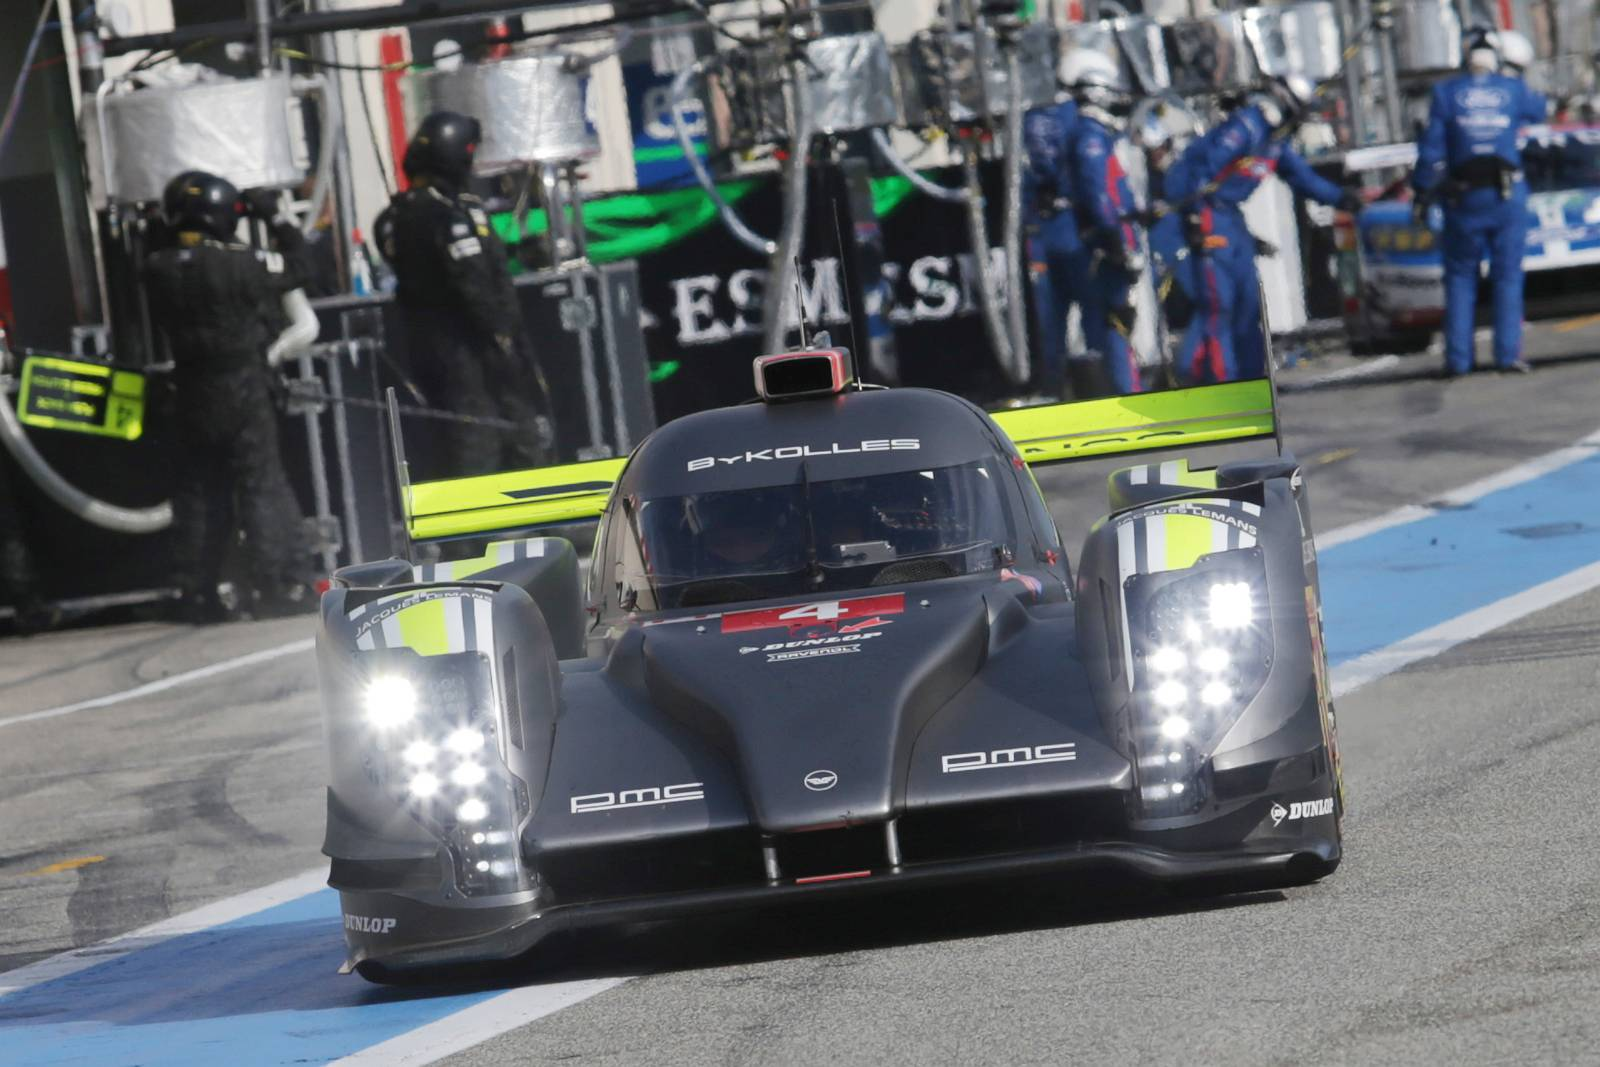 byKOLLES-racing-WEC-paul-ricard-2016-025